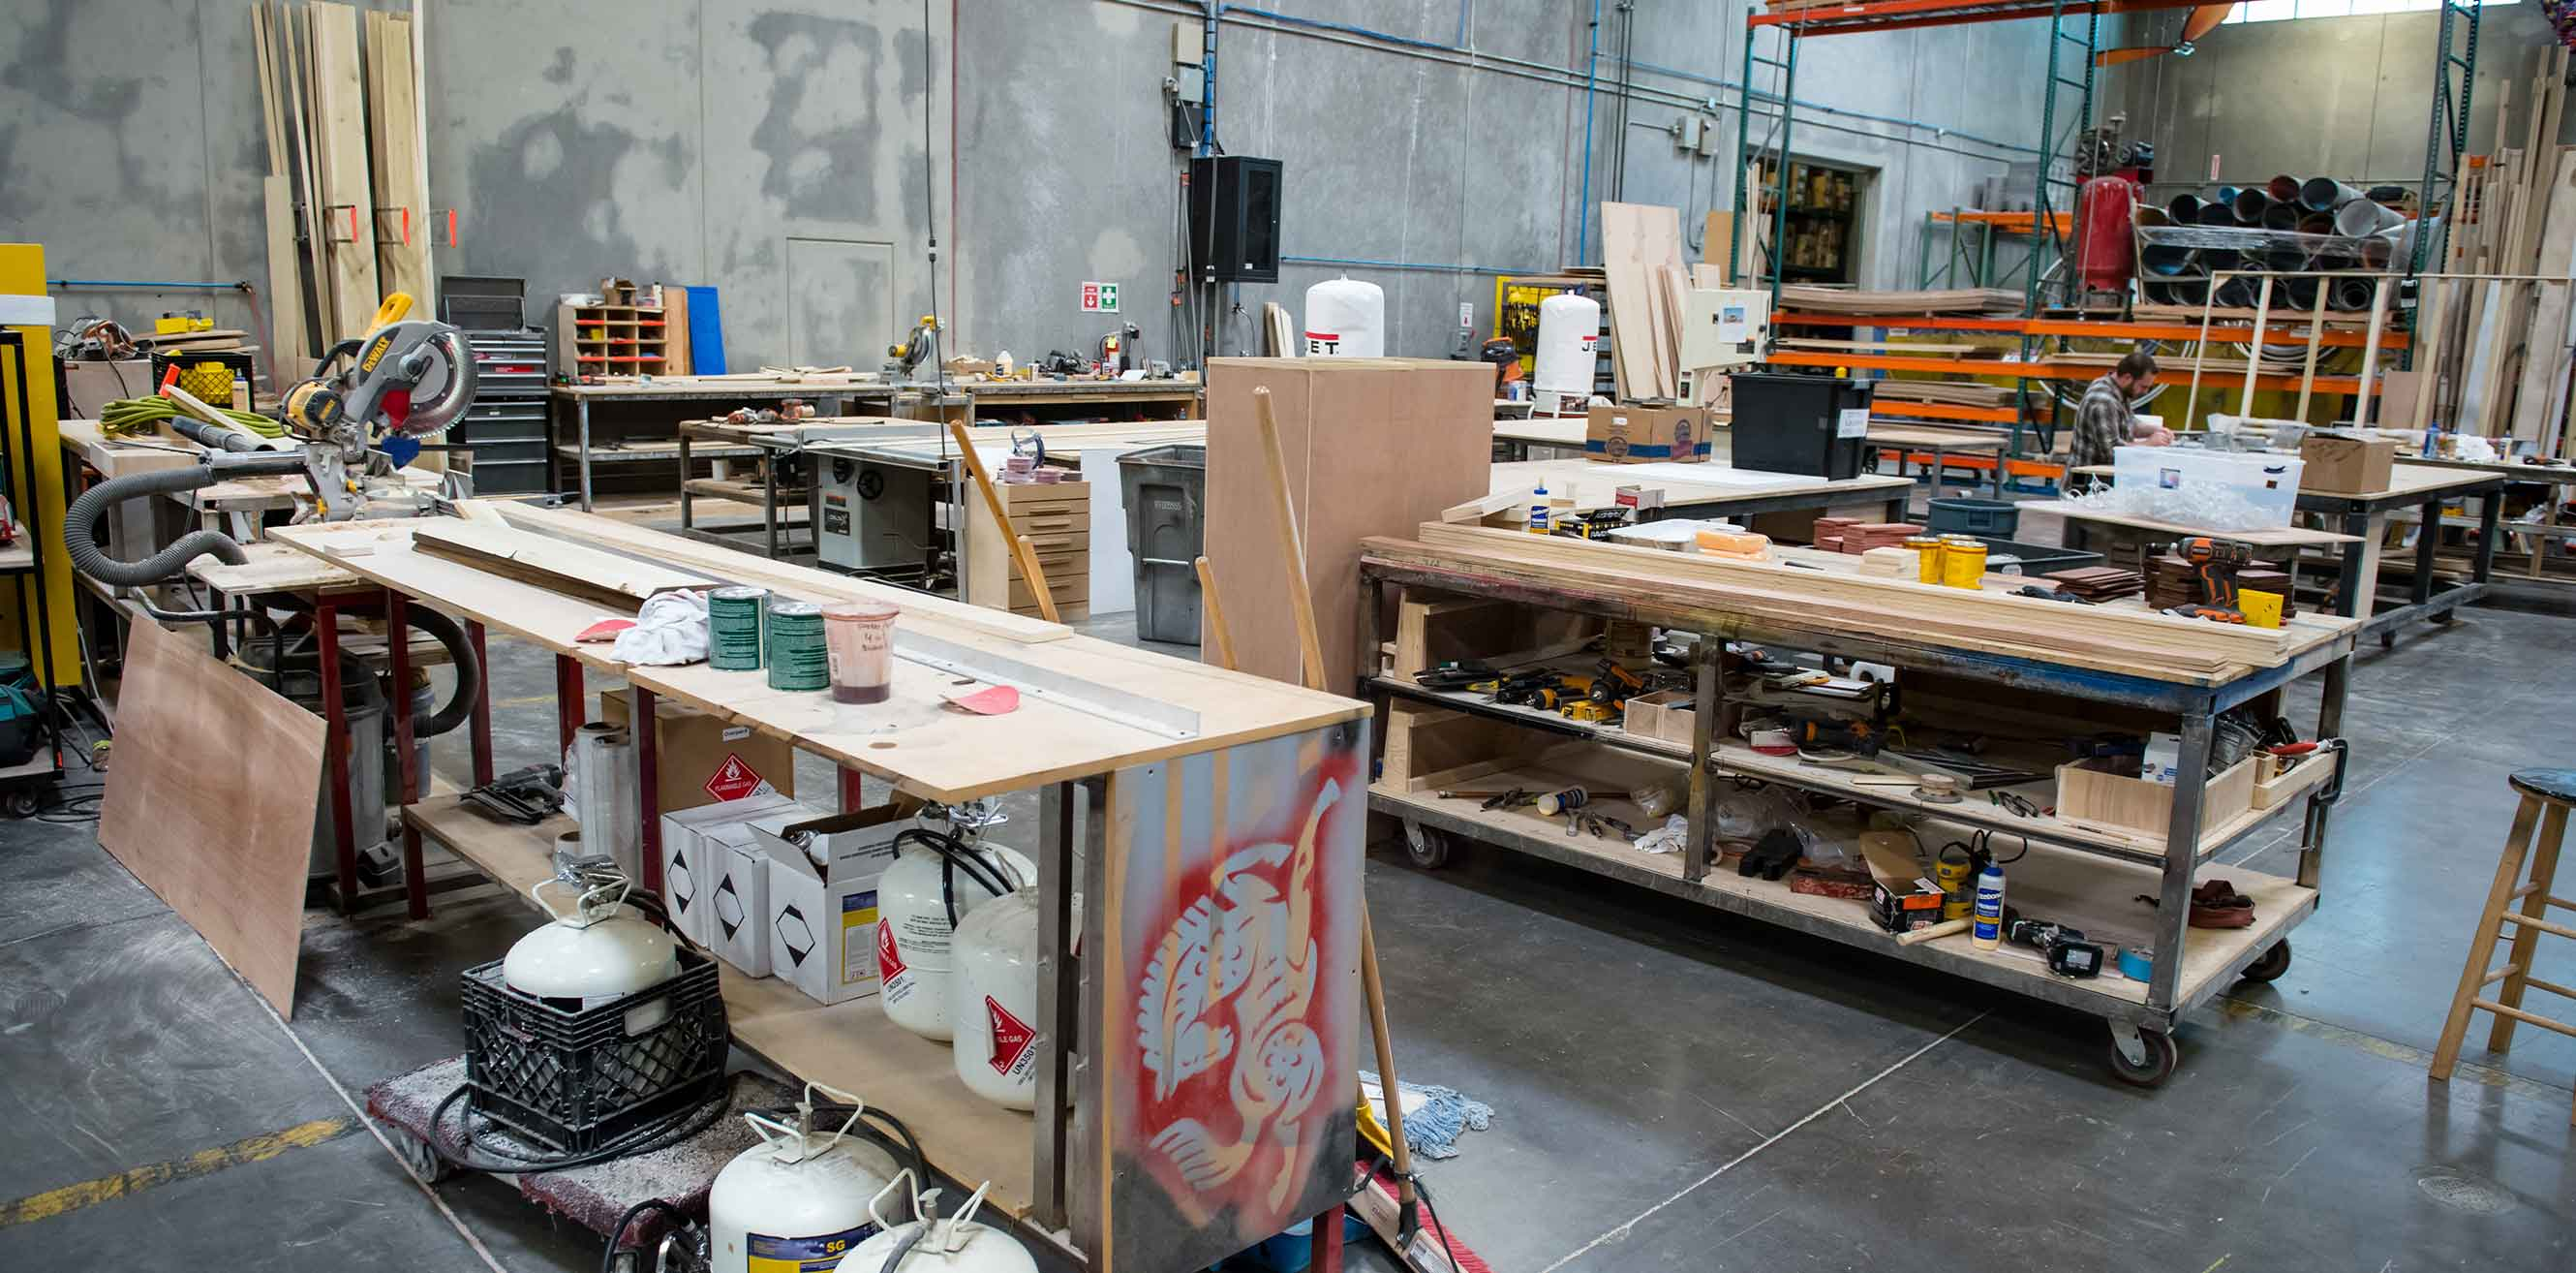 Tables and supplies in the warehouse studio